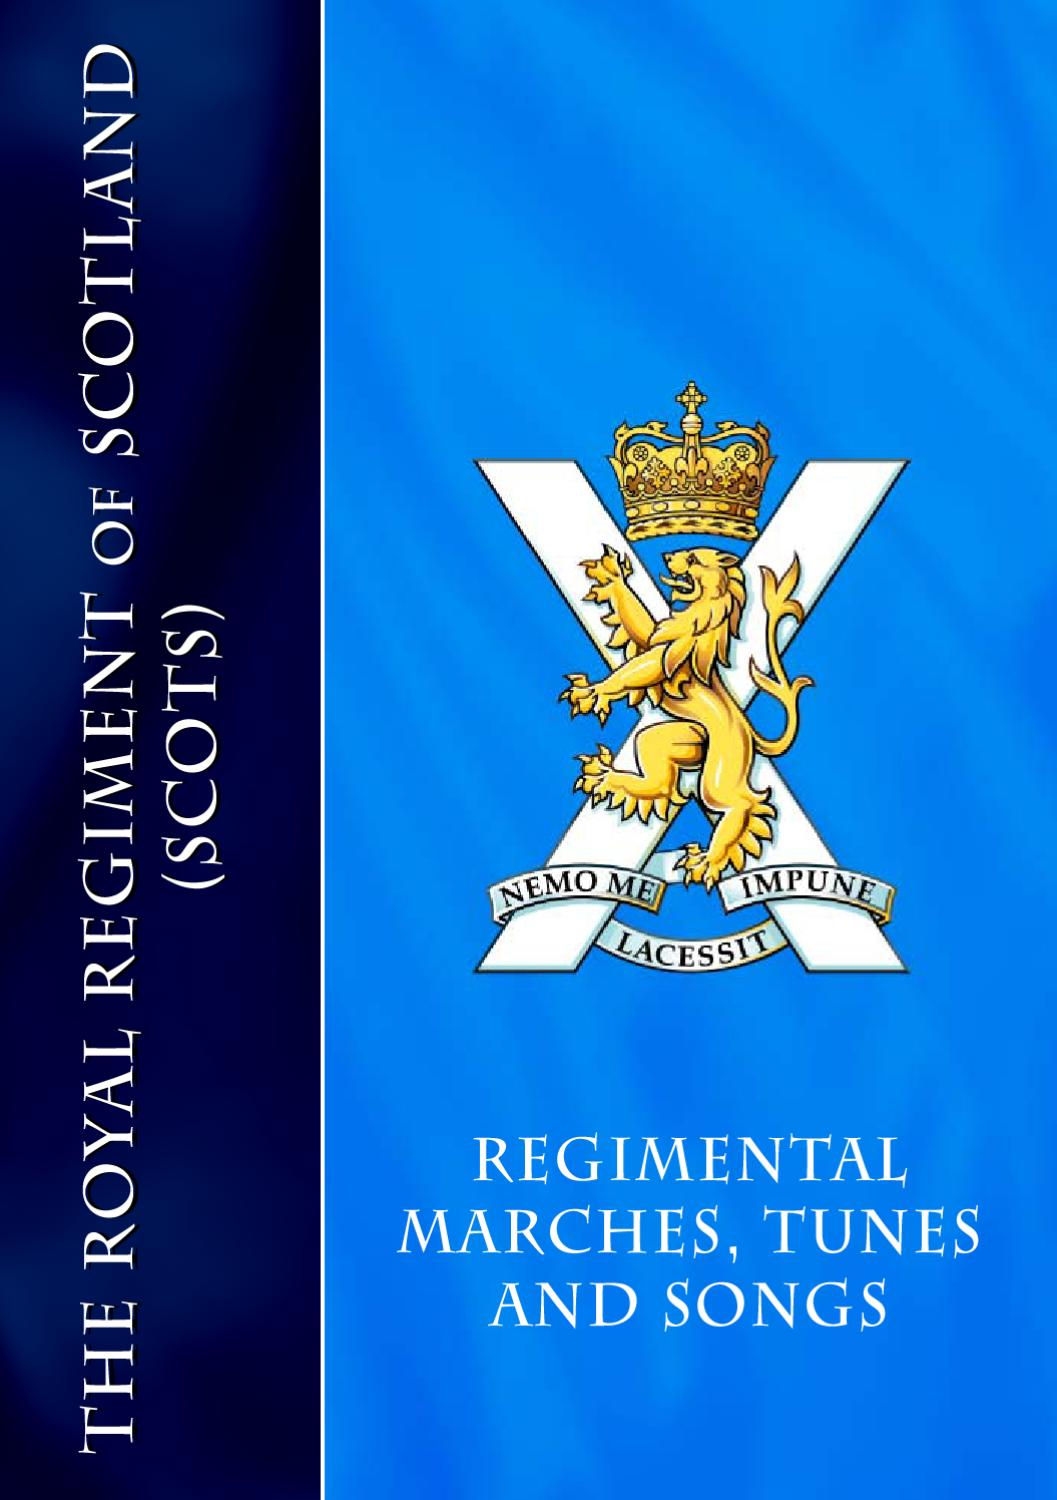 Regimental Music Handbook by The Royal Regiment of Scotland